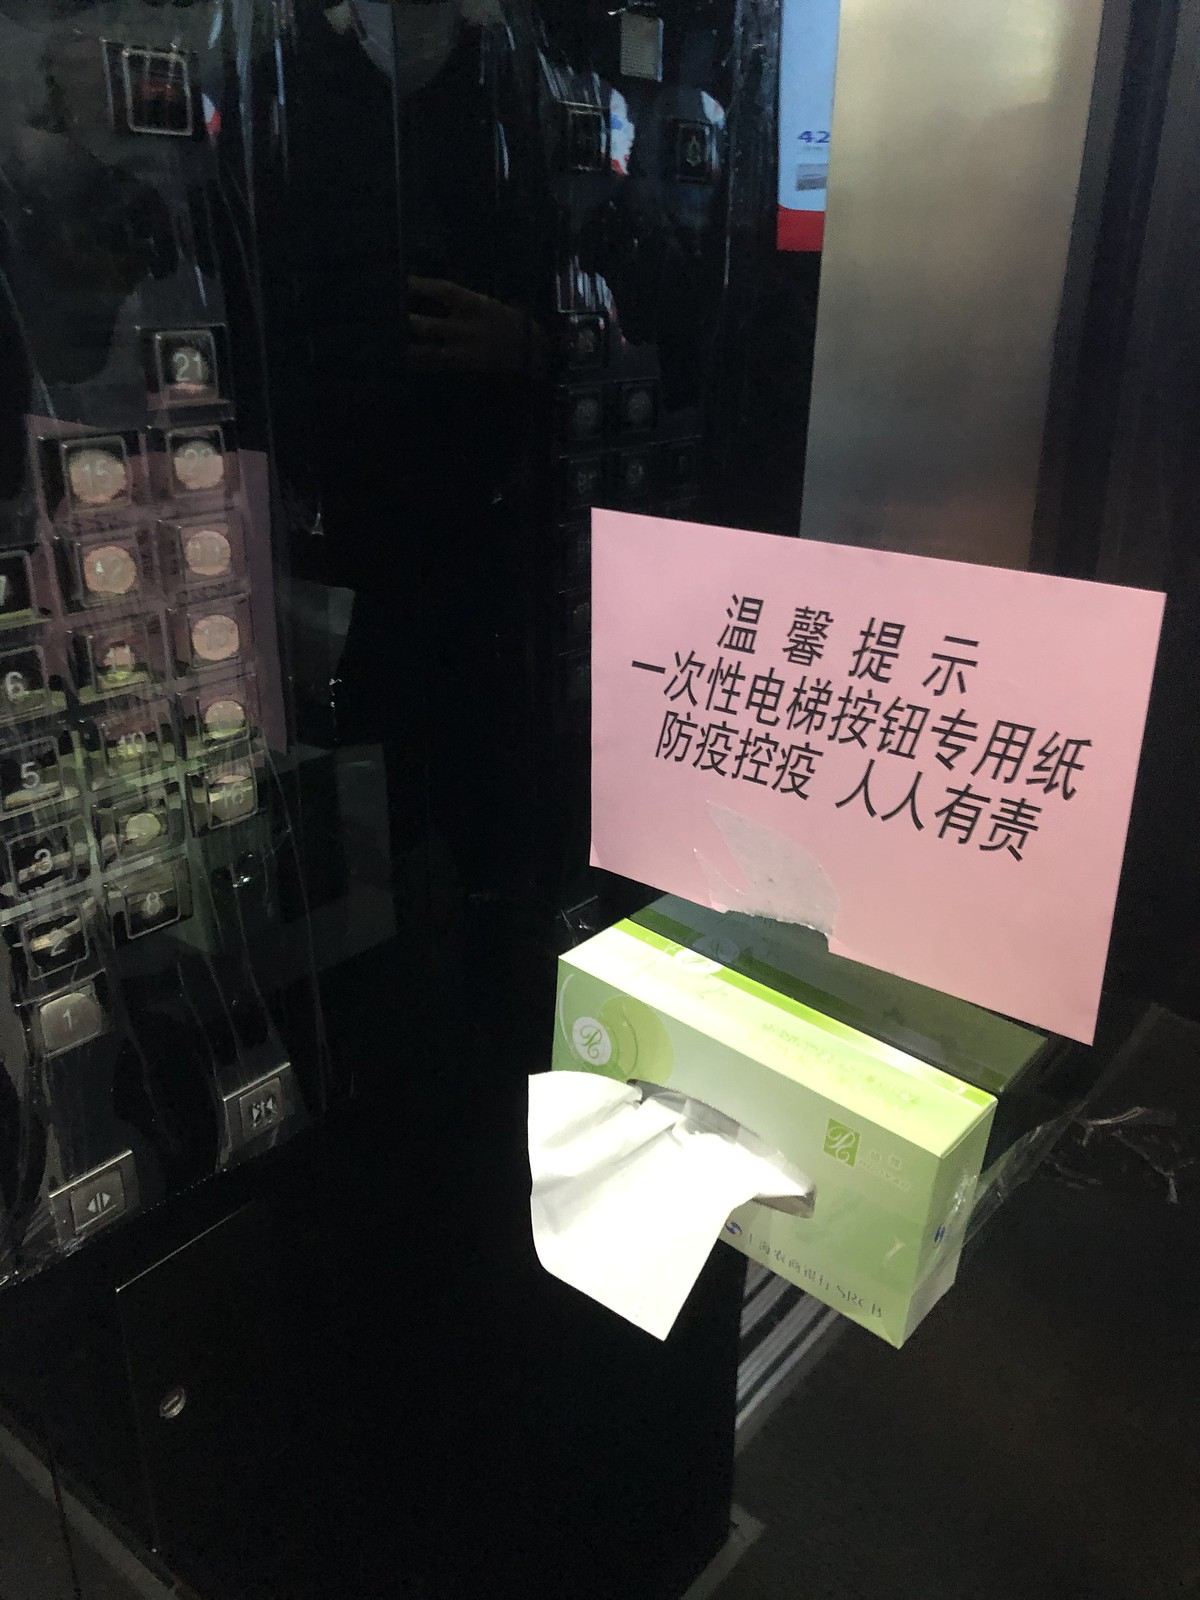 Tissues for pressing elevator buttons